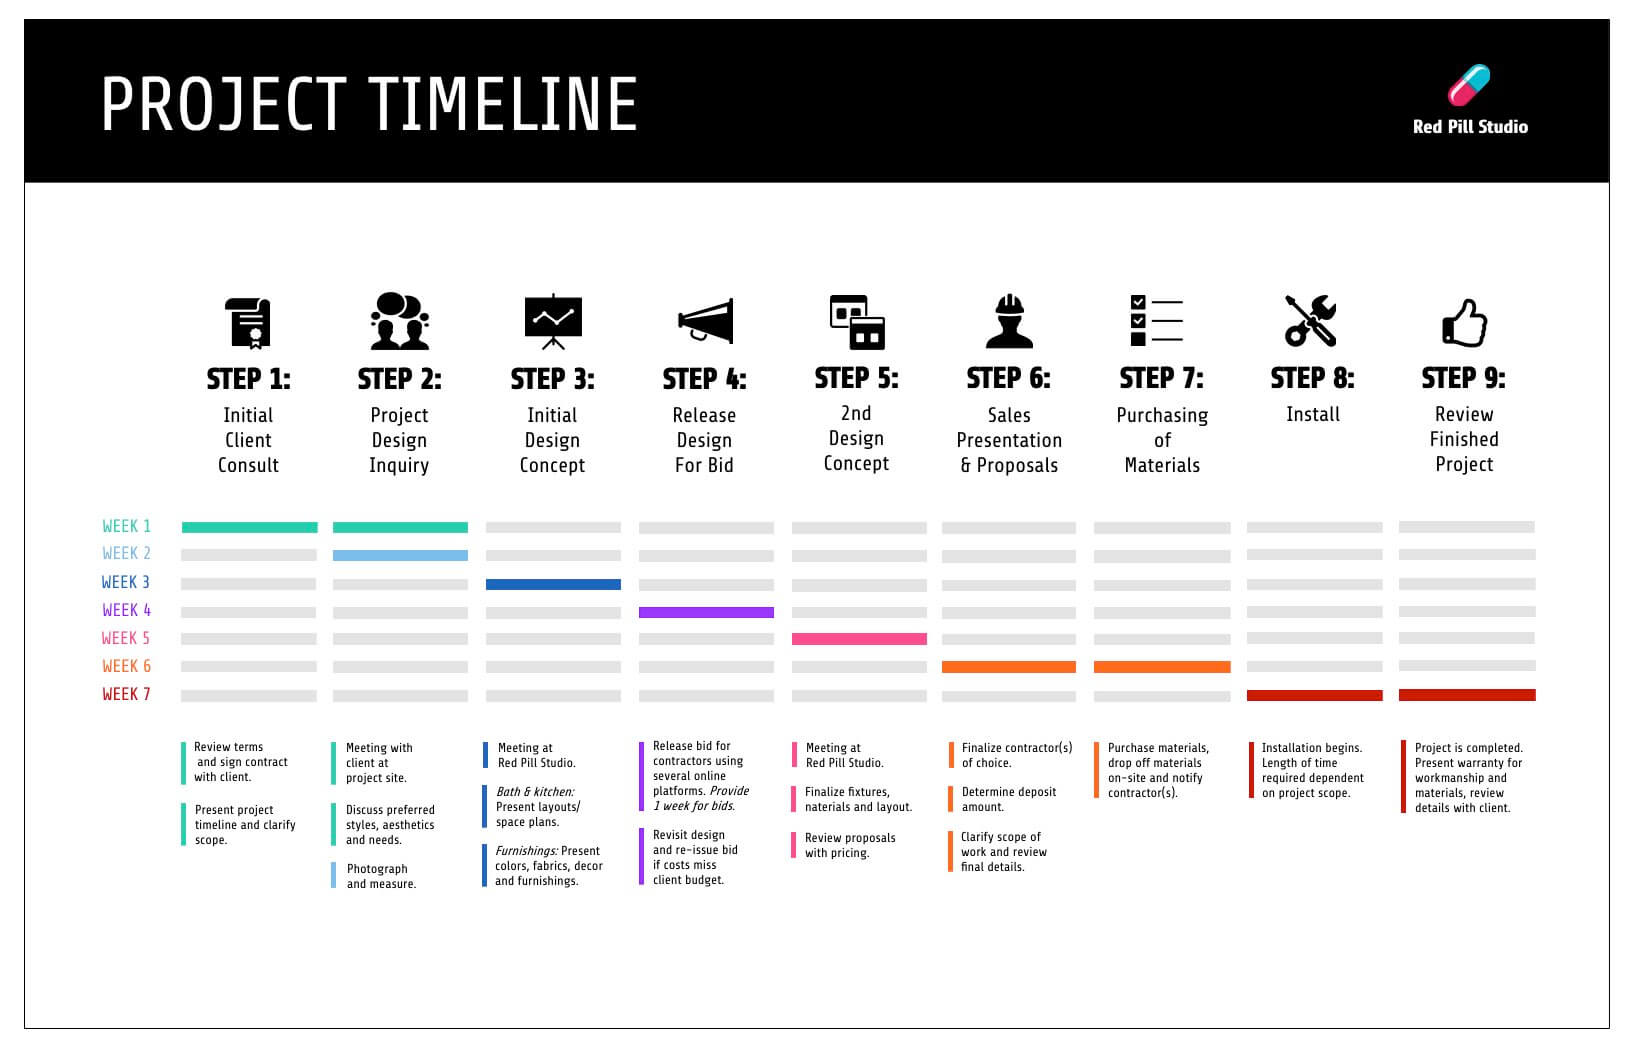 Project-Plan-Timeline-Infographic-Infographic-Design